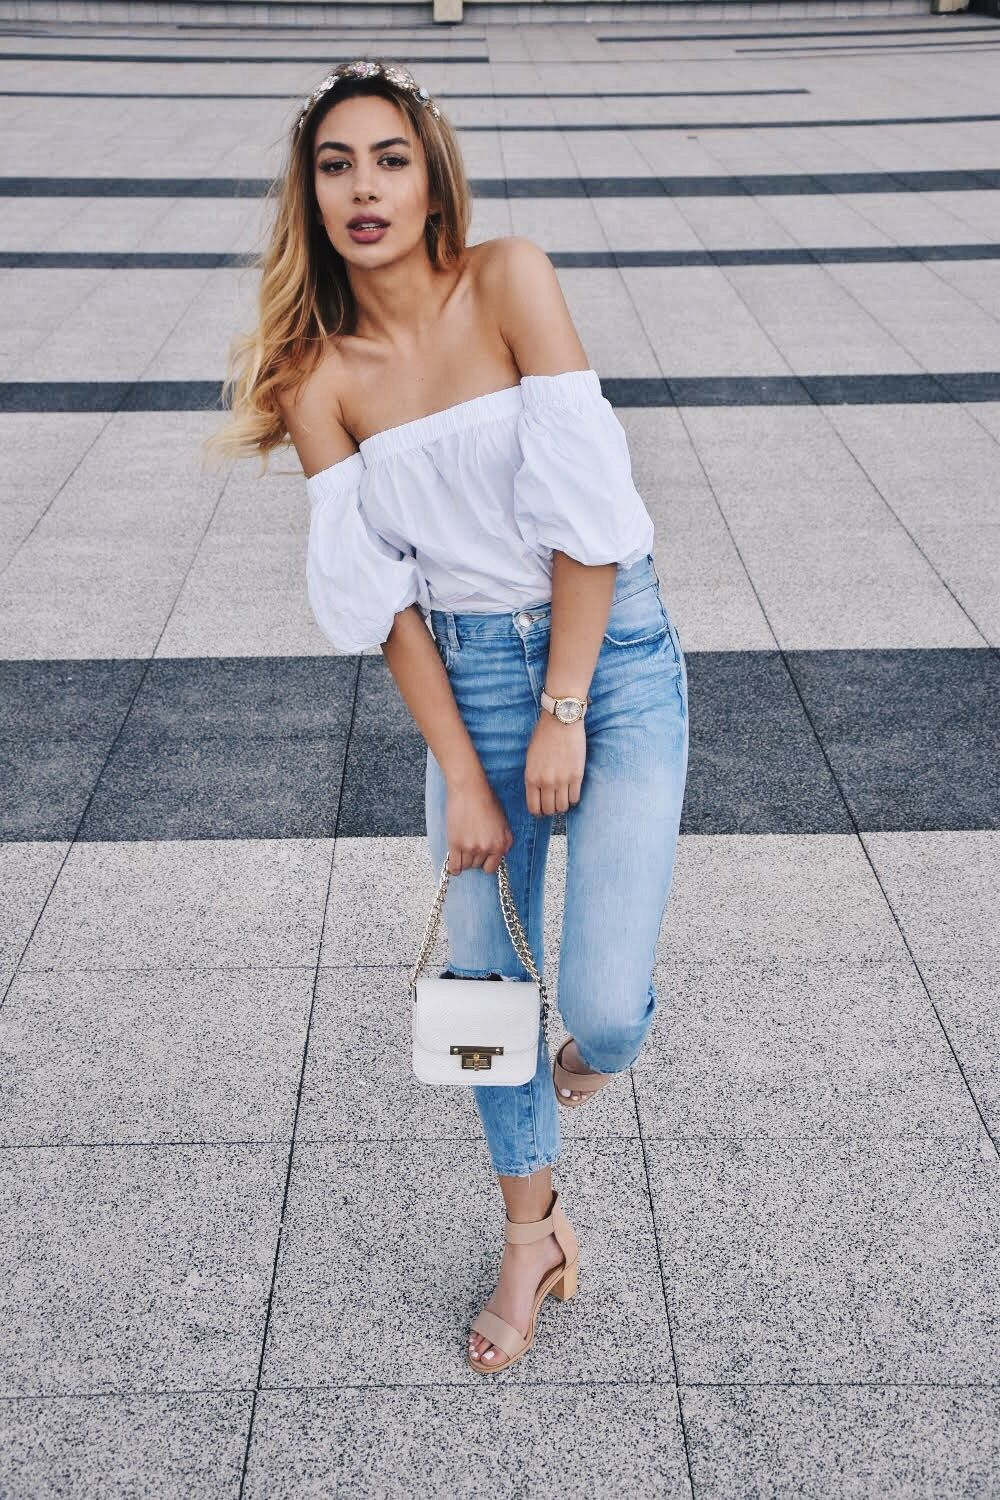 Summer Look First Date Outfits Fashion Date Outfits [ 1500 x 1000 Pixel ]